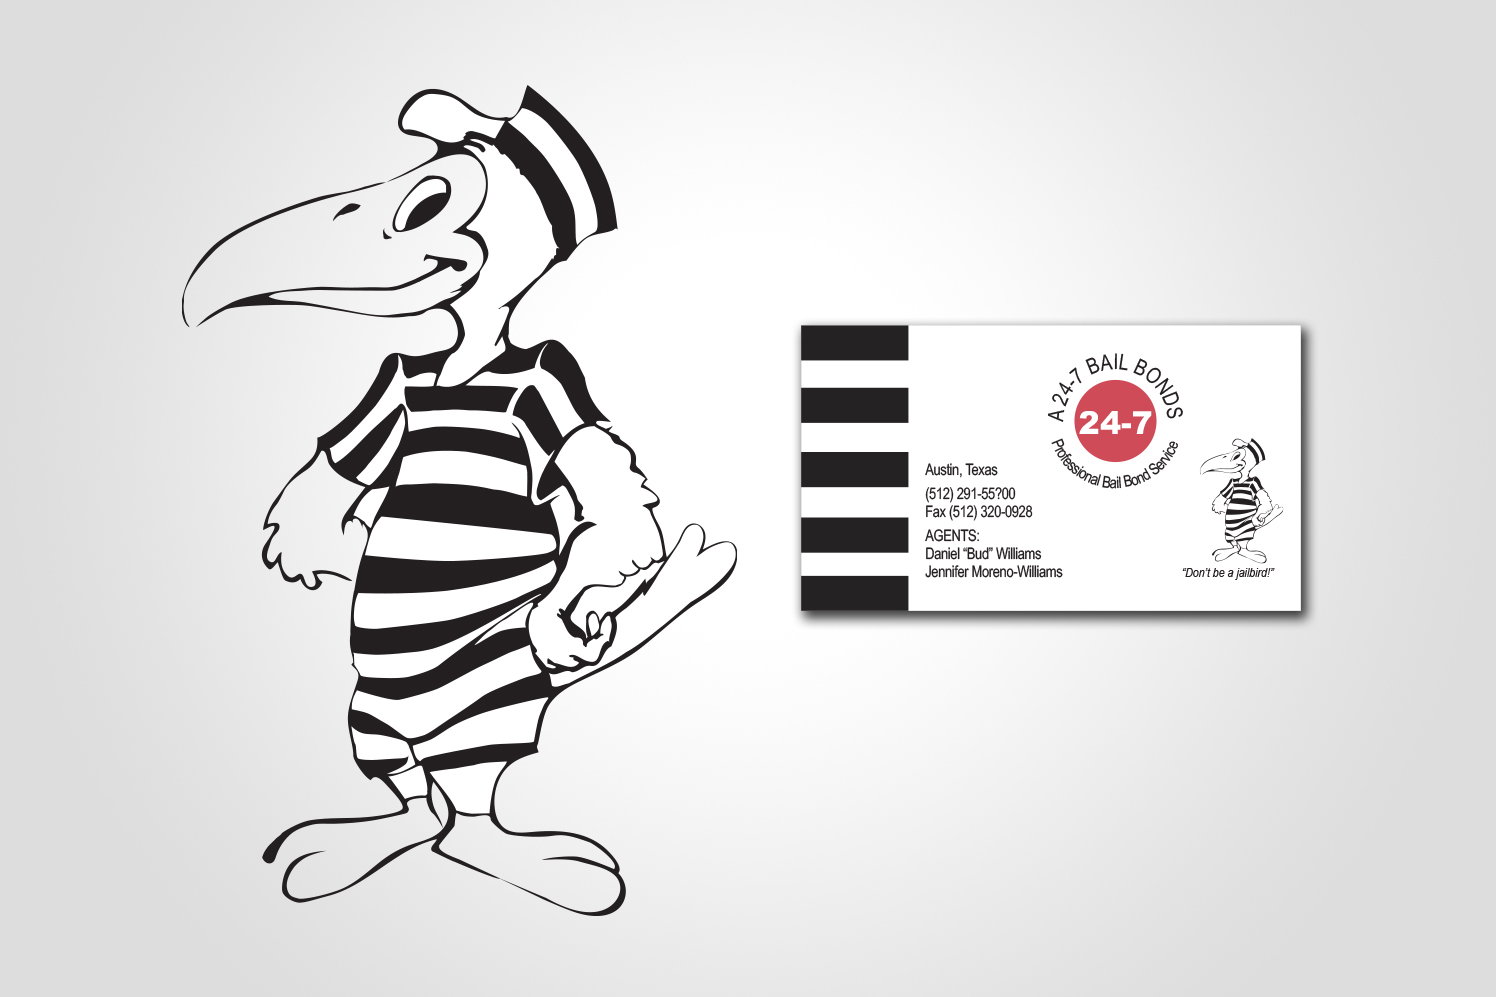 A 24-7 Bail Bonds logo, character, and business card design